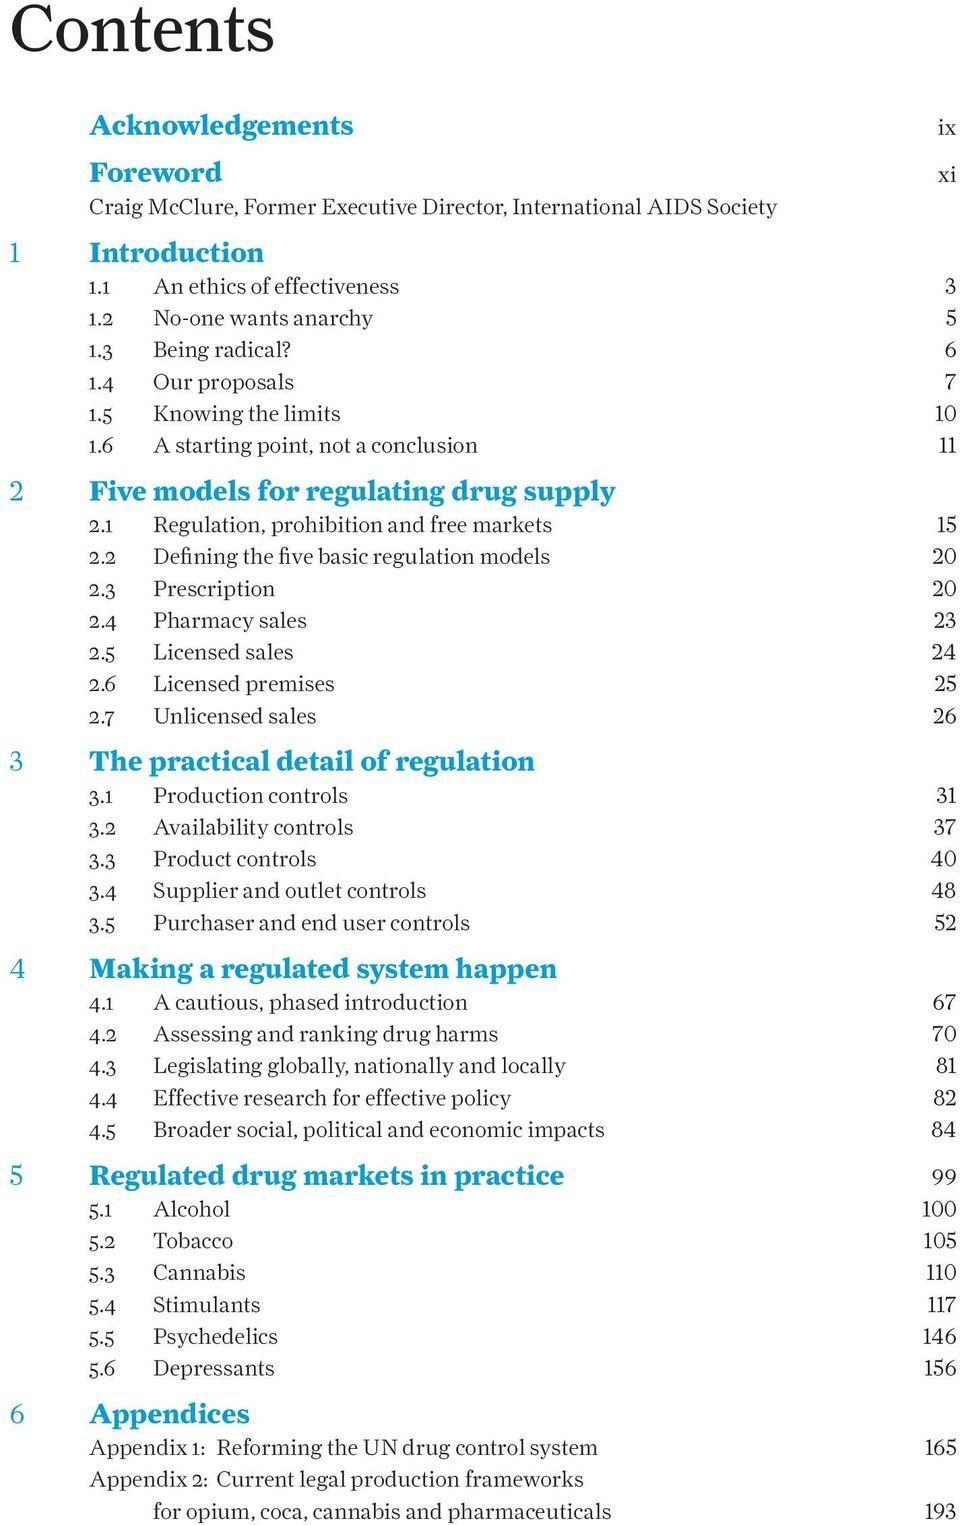 2 Defining the five basic regulation models 20 2.3 Prescription 20 2.4 Pharmacy sales 23 2.5 Licensed sales 24 2.6 Licensed premises 25 2.7 Unlicensed sales 26 3 The practical detail of regulation 3.